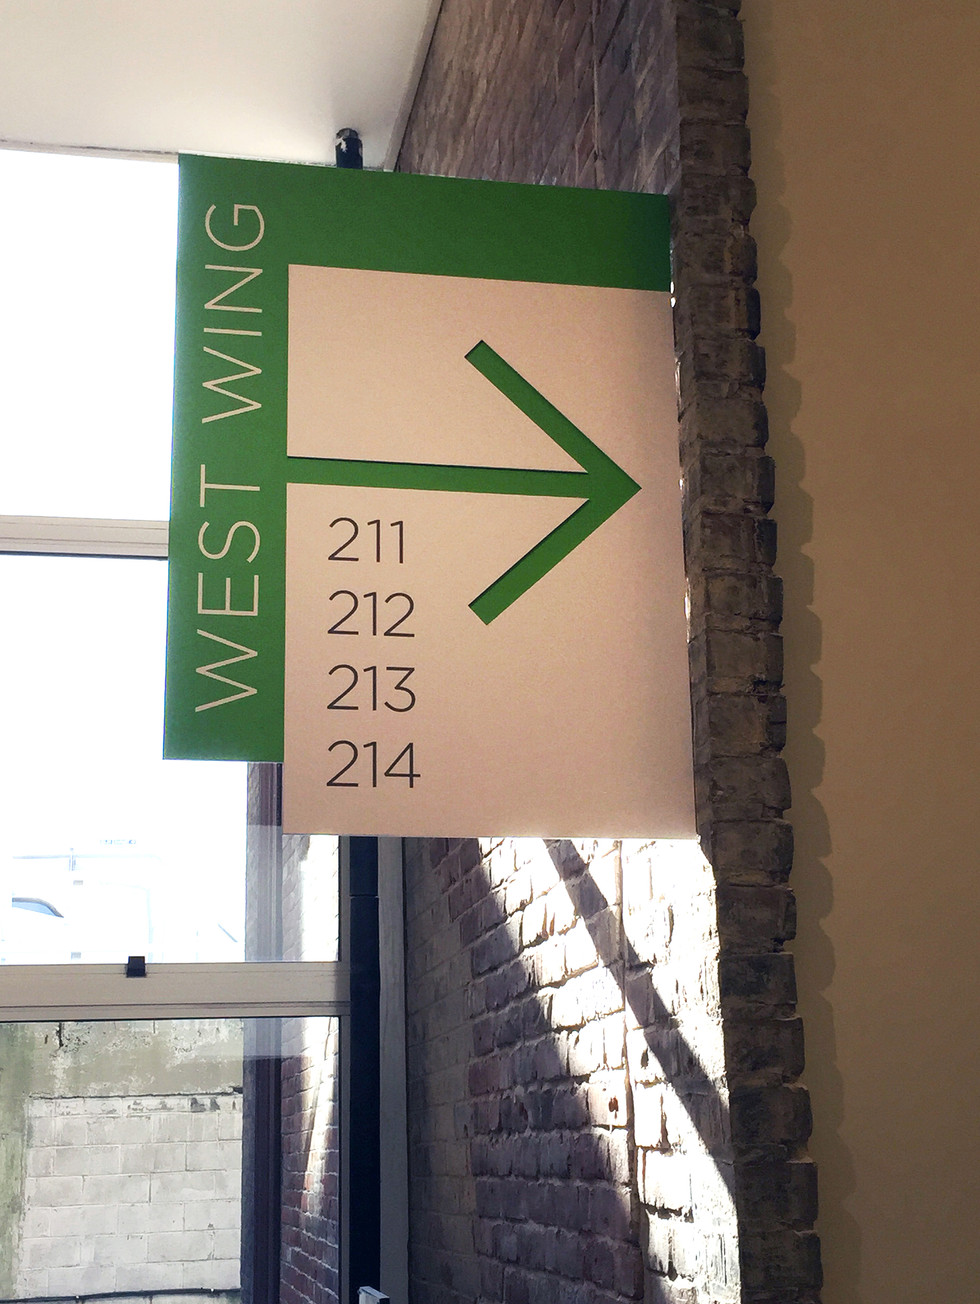 West Wing signage